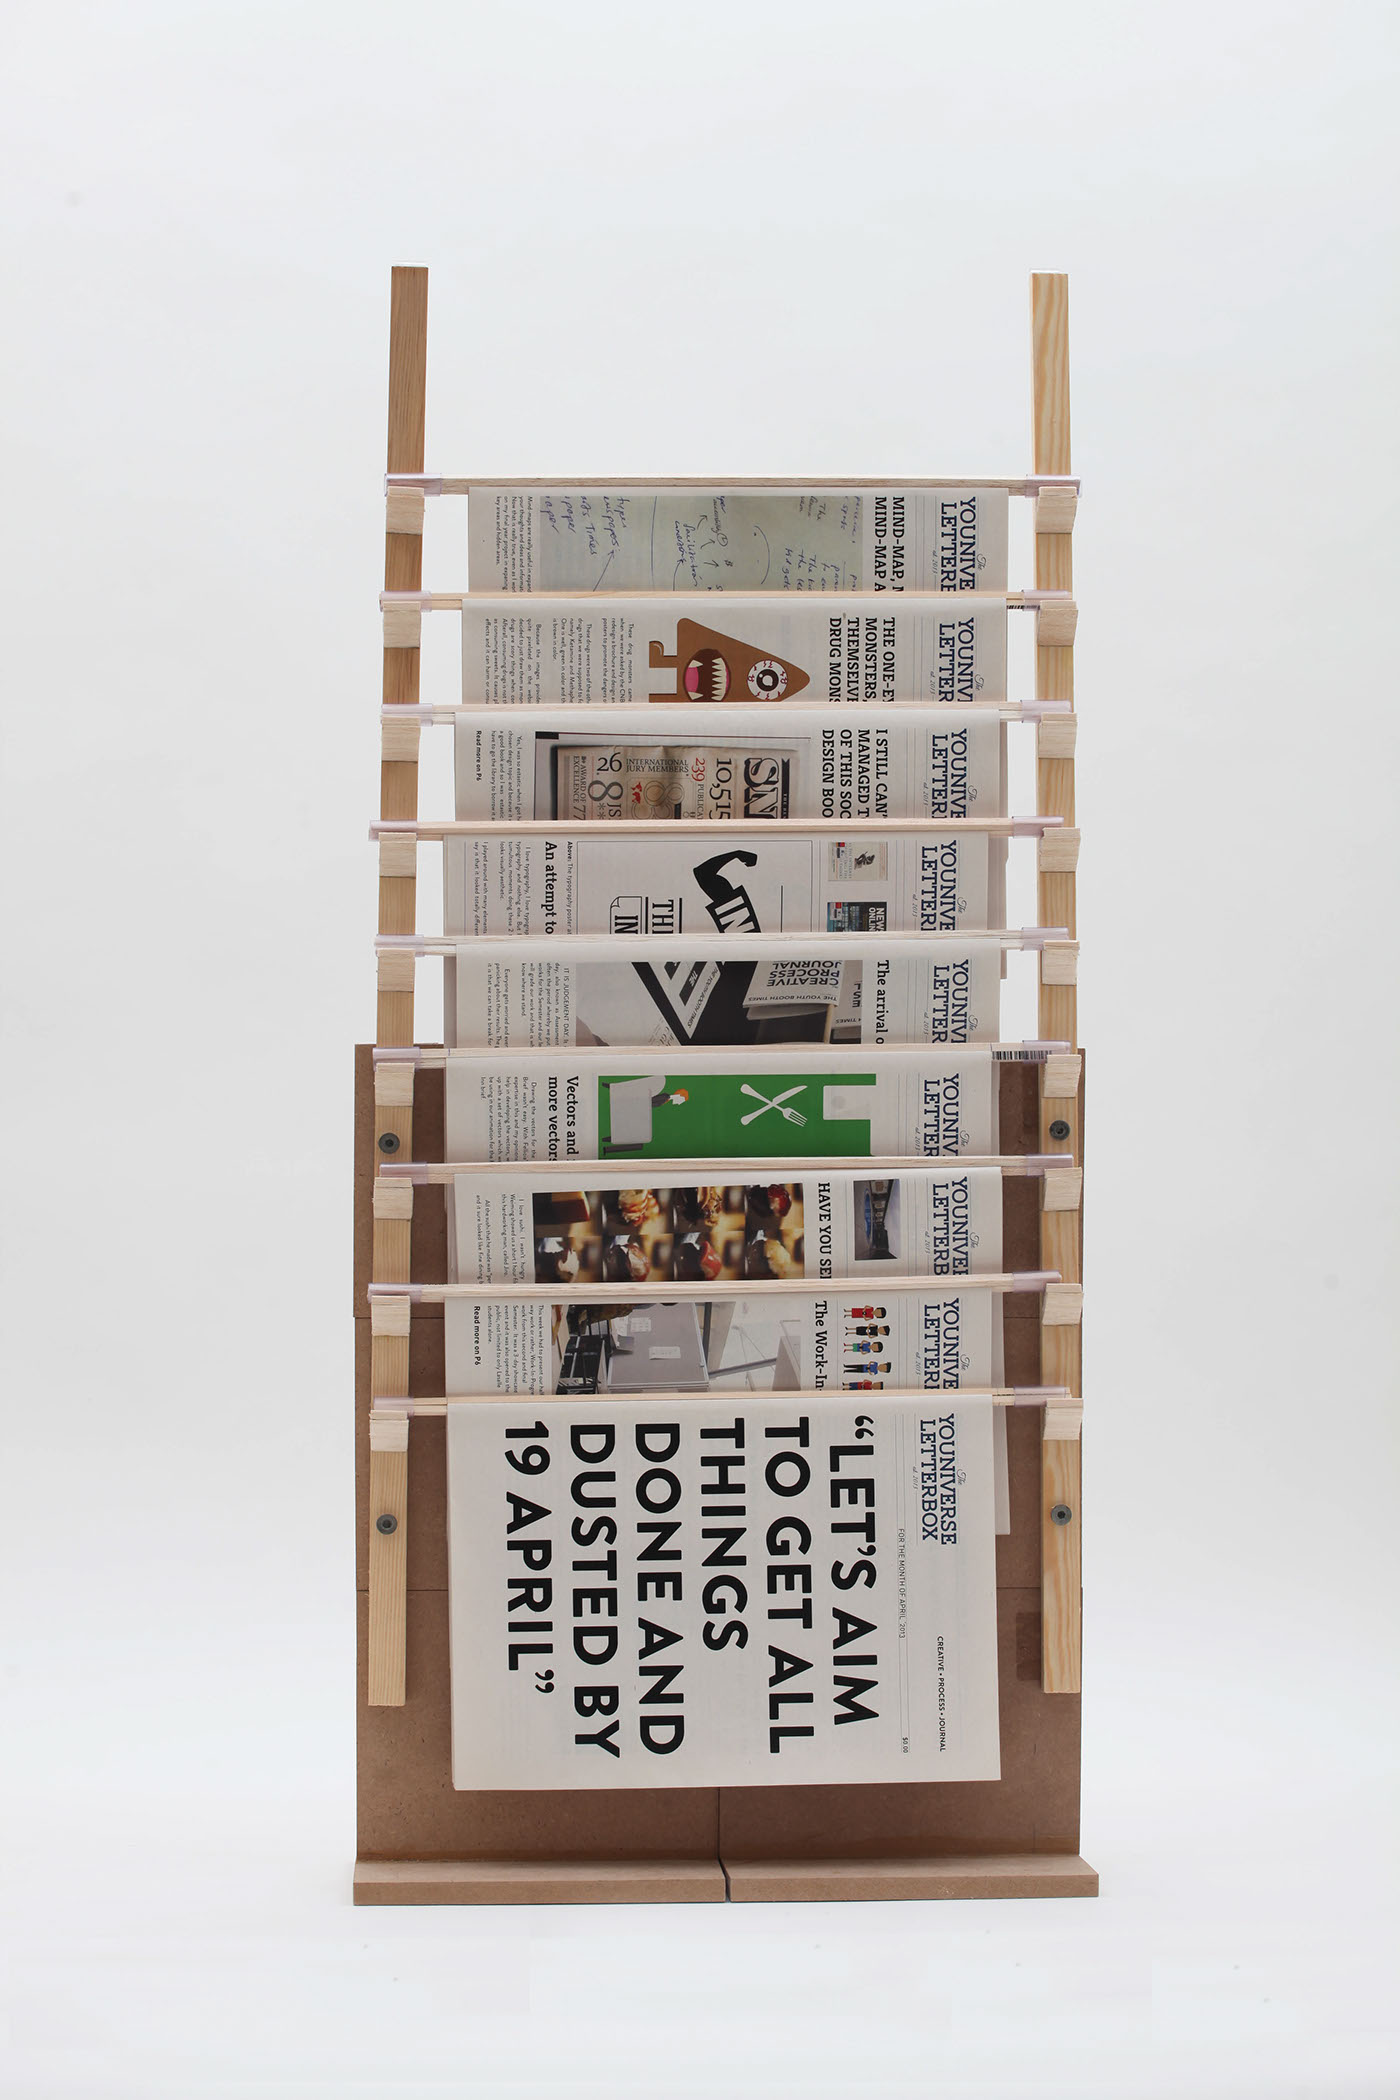 Newspaper Stand Designs : The newspaper stand creative process journal on behance